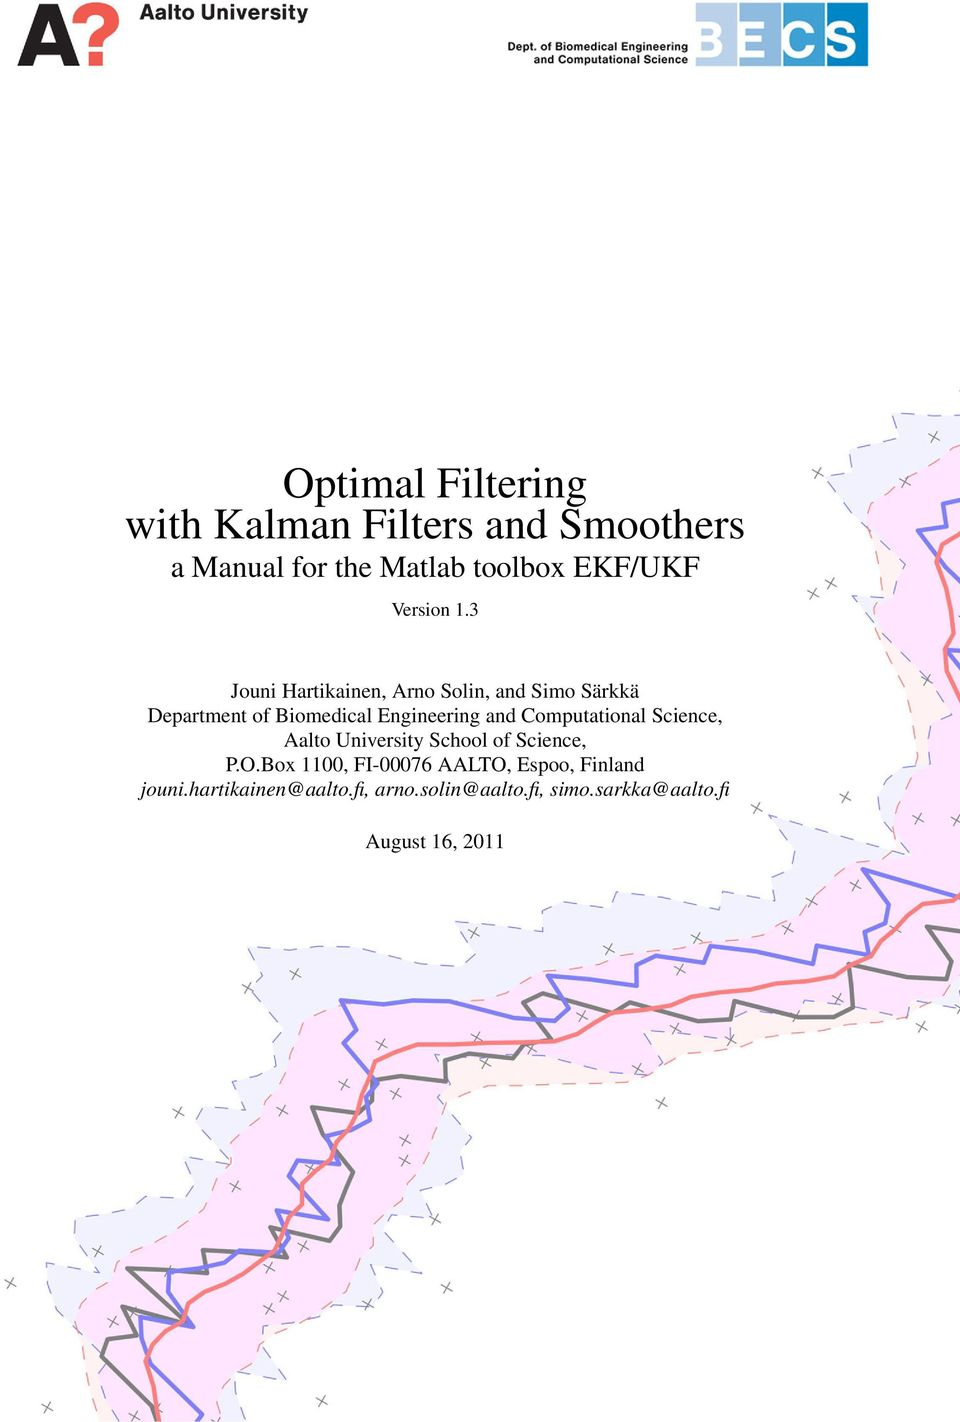 Optimal Filtering with Kalman Filters and Smoothers - PDF